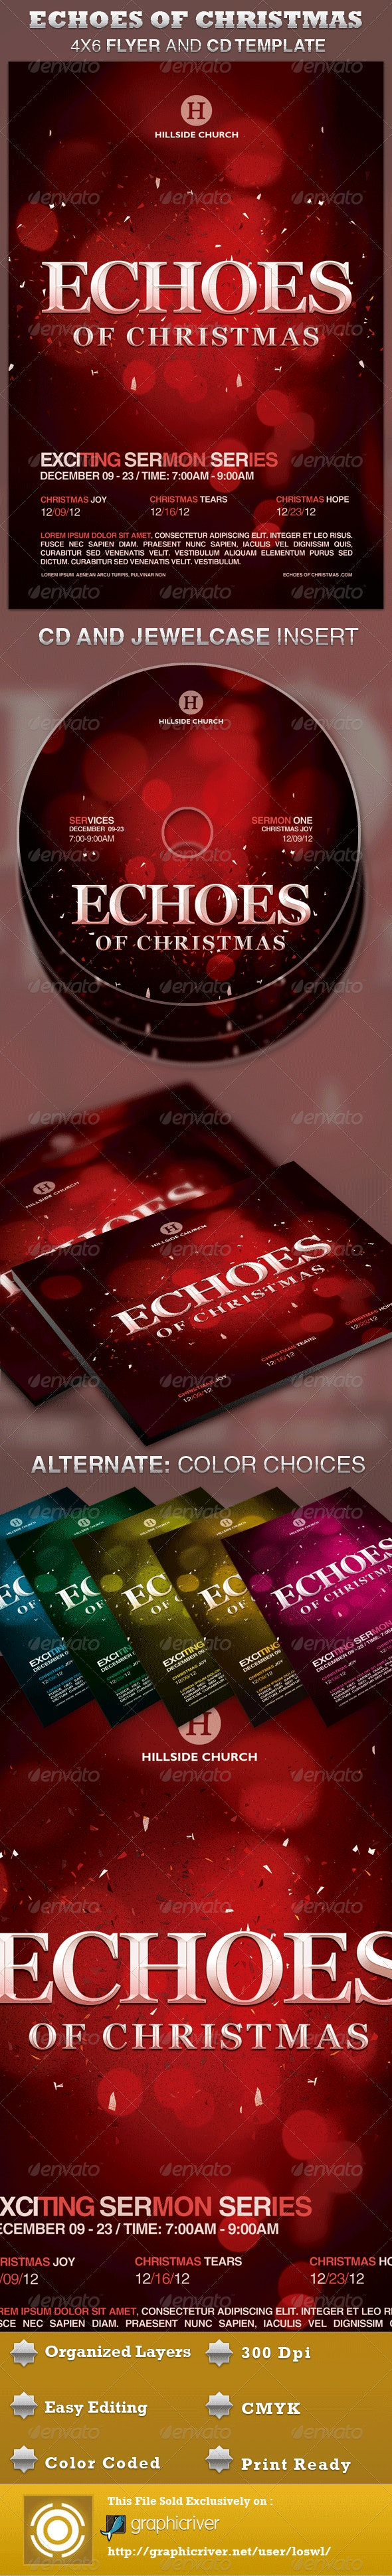 Echoes of Christmas Church Flyer and CD Template - Church Flyers